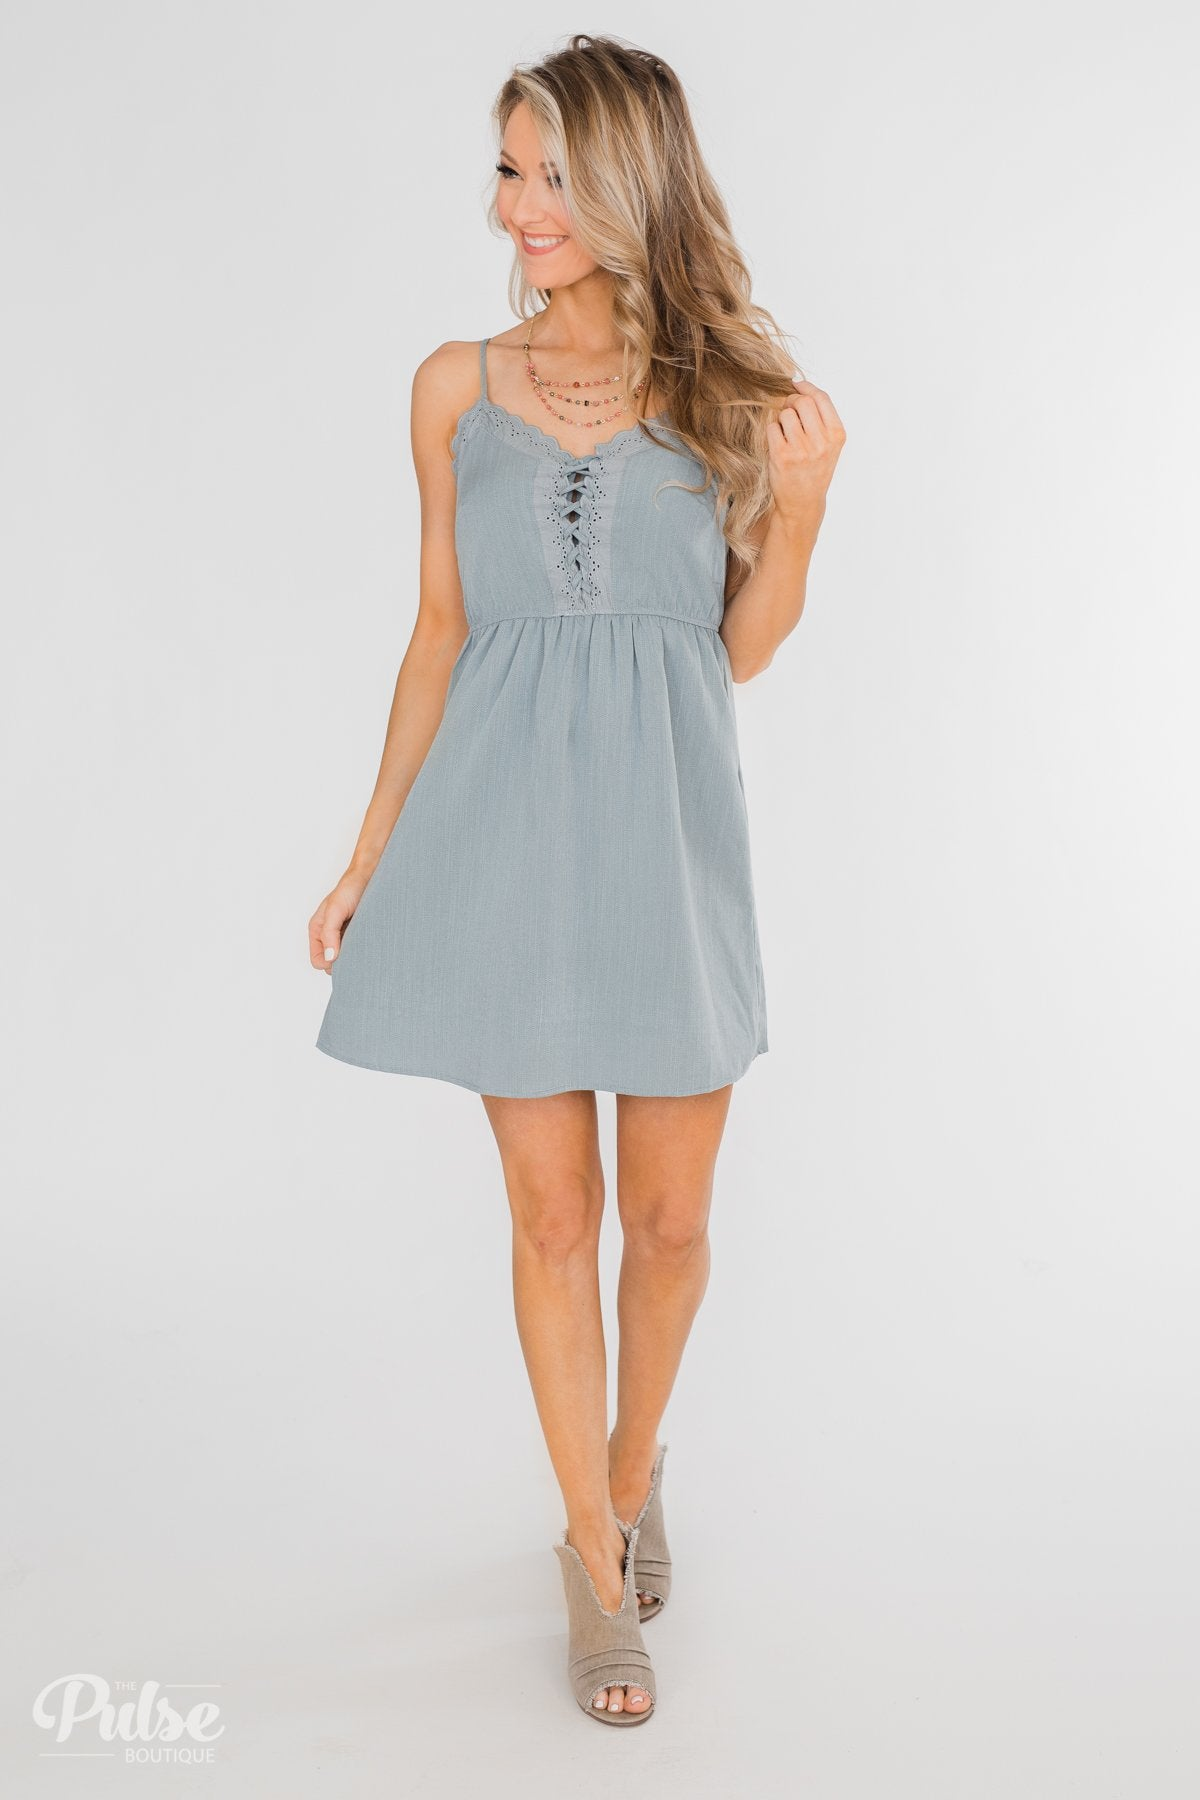 594dd60e3526 Take Me To Summer Lace Up Dress- Slate Blue – The Pulse Boutique